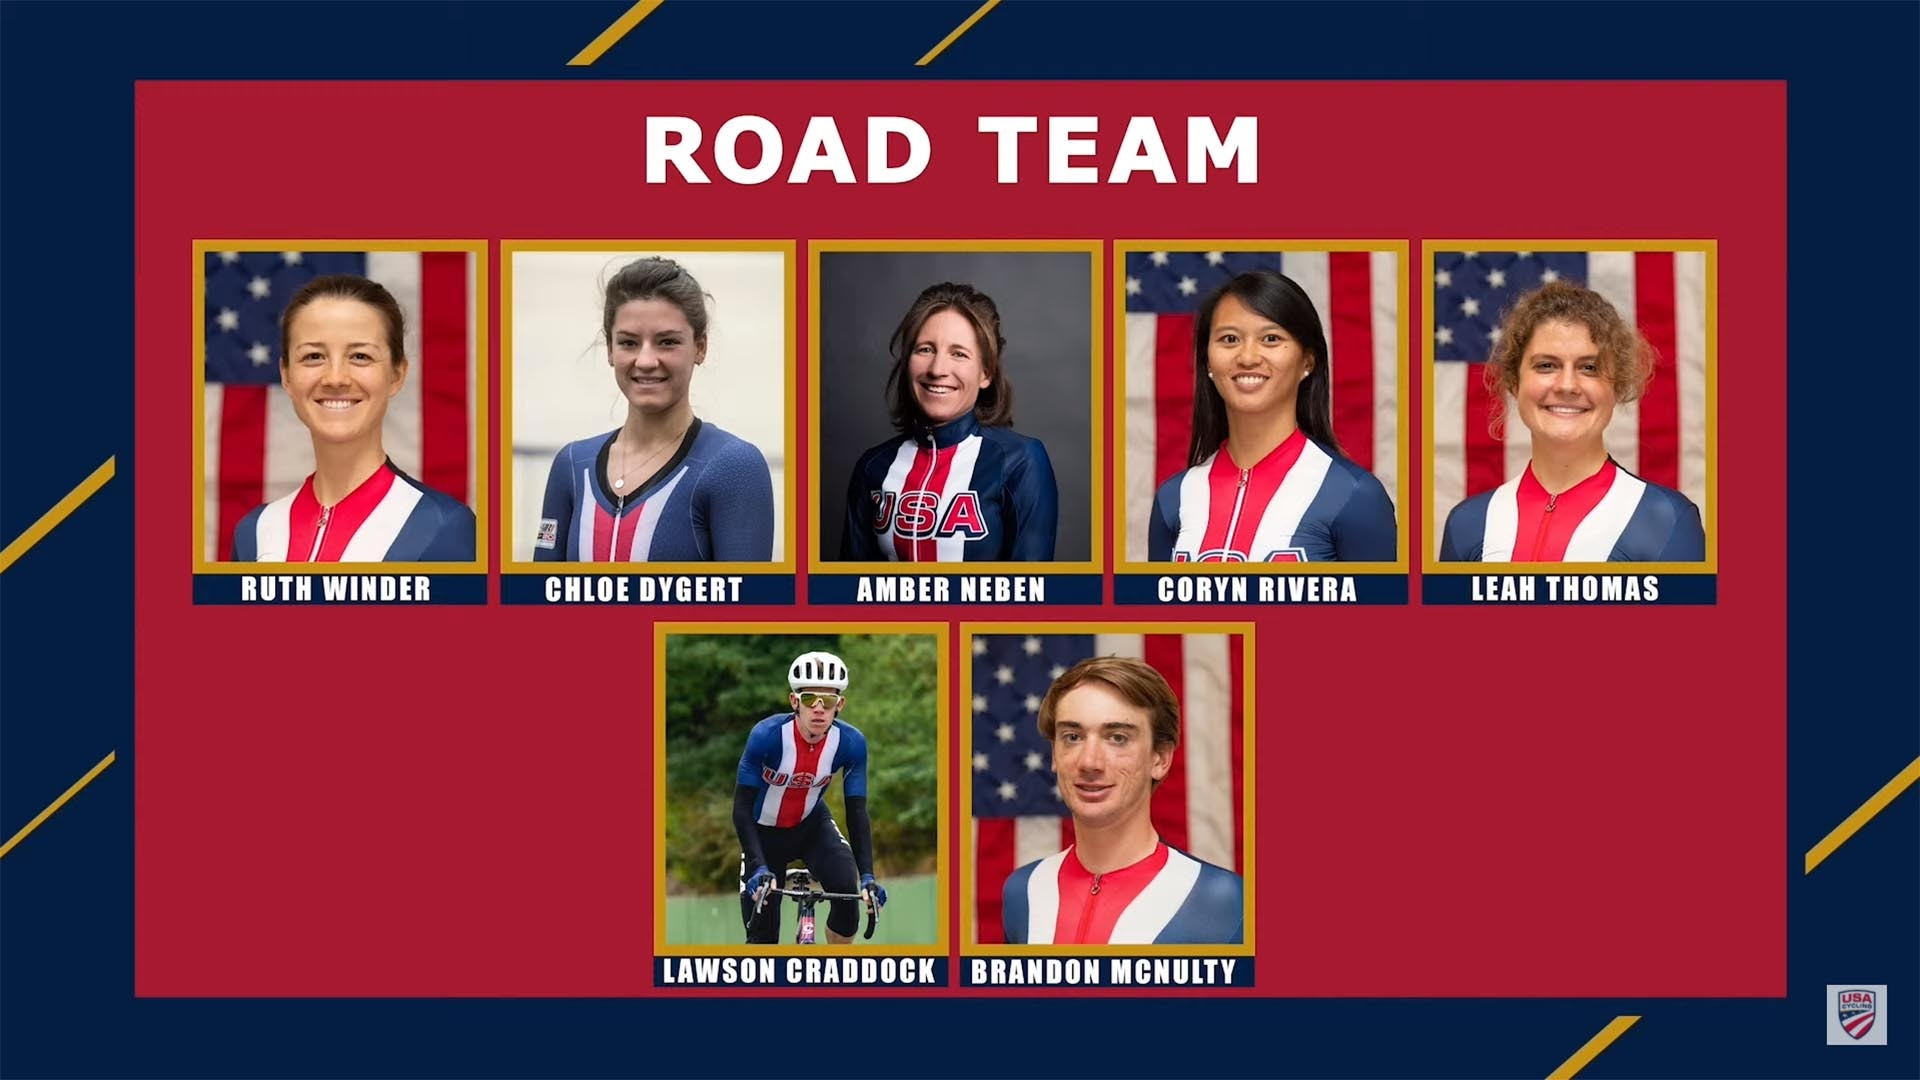 Team USA's road cycling team roster for the Tokyo Olympics